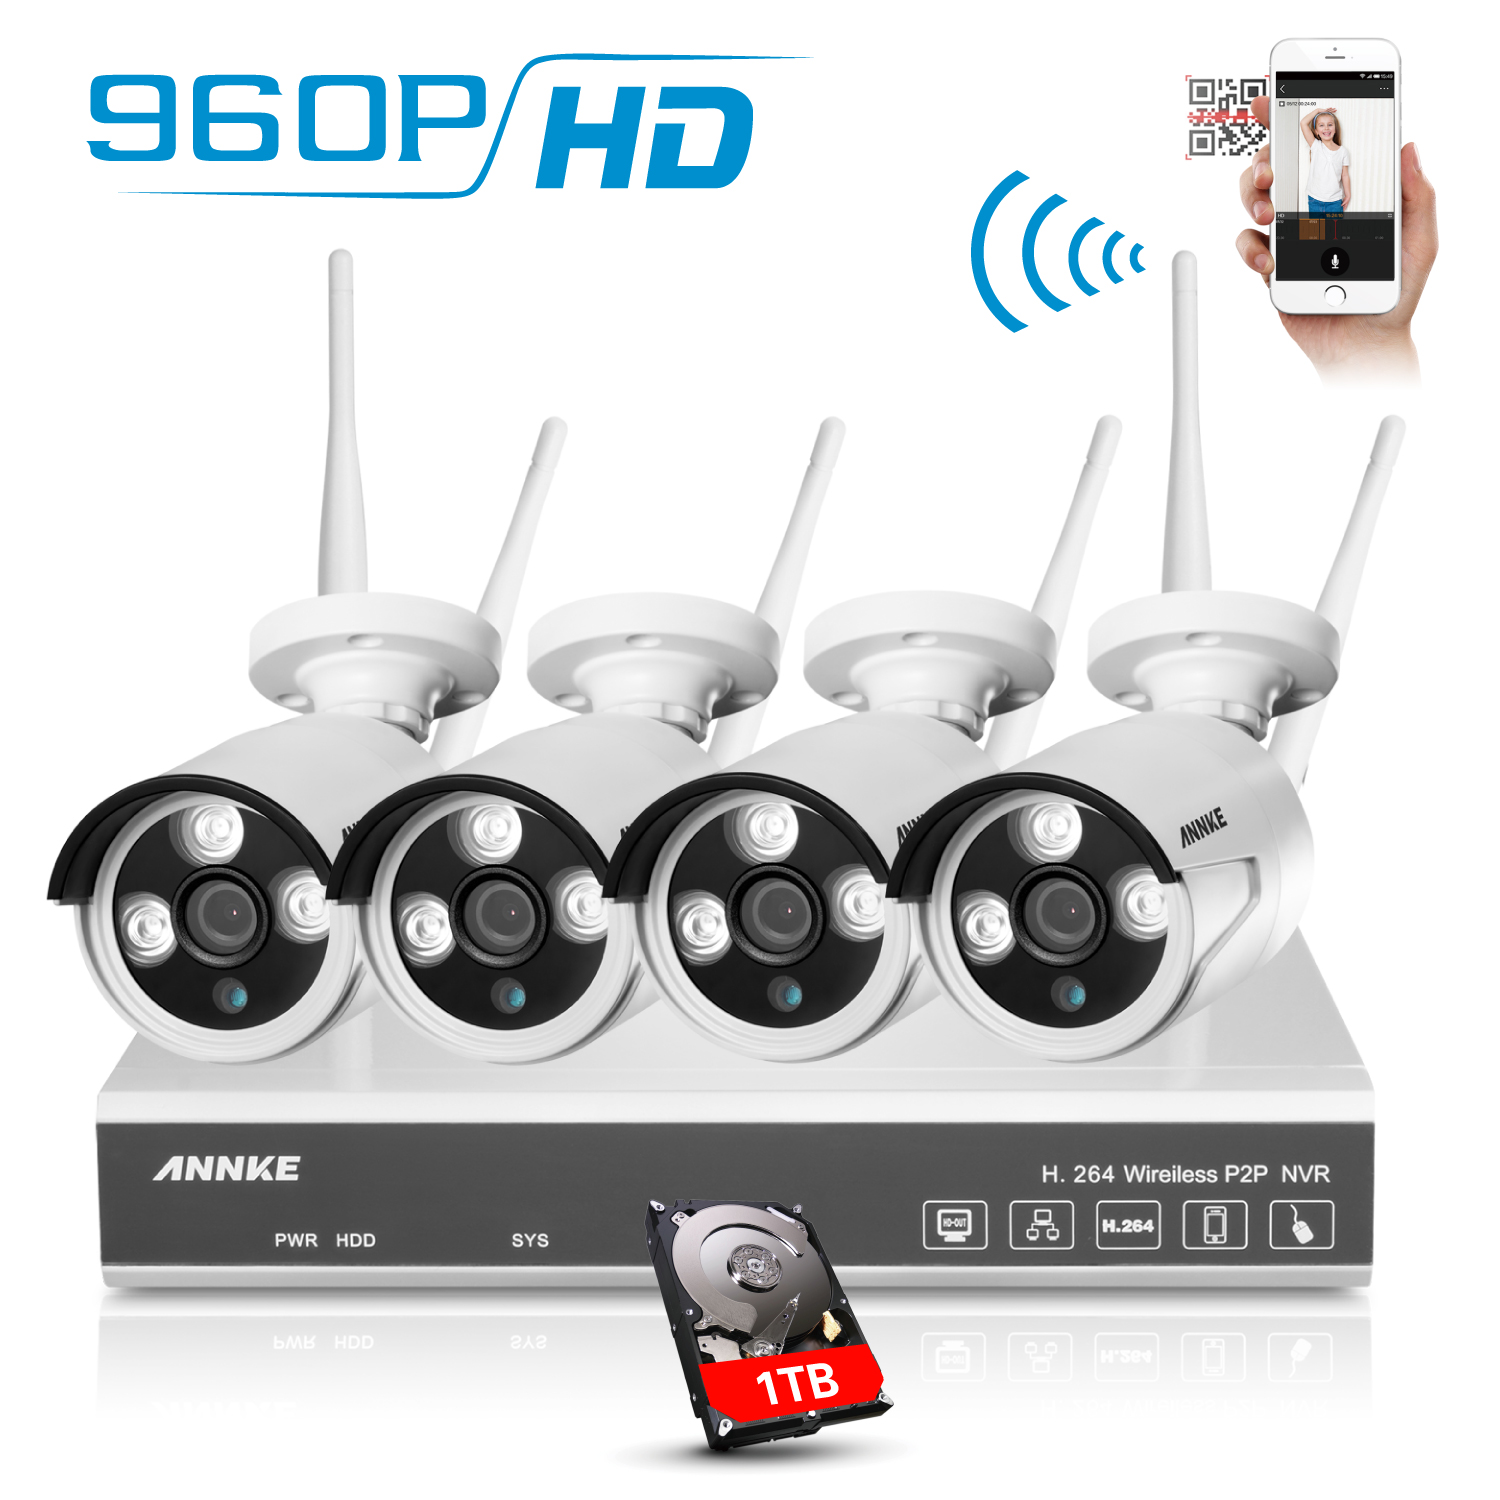 Annke 960P HD Wireless Network/IP Security Camera System, 4CH WIFI NVR with 4x 1.3MP Surveillance Cameras, Quick Remote view, 1280*960 High Resolution with Superior Night vision-1TB HDD